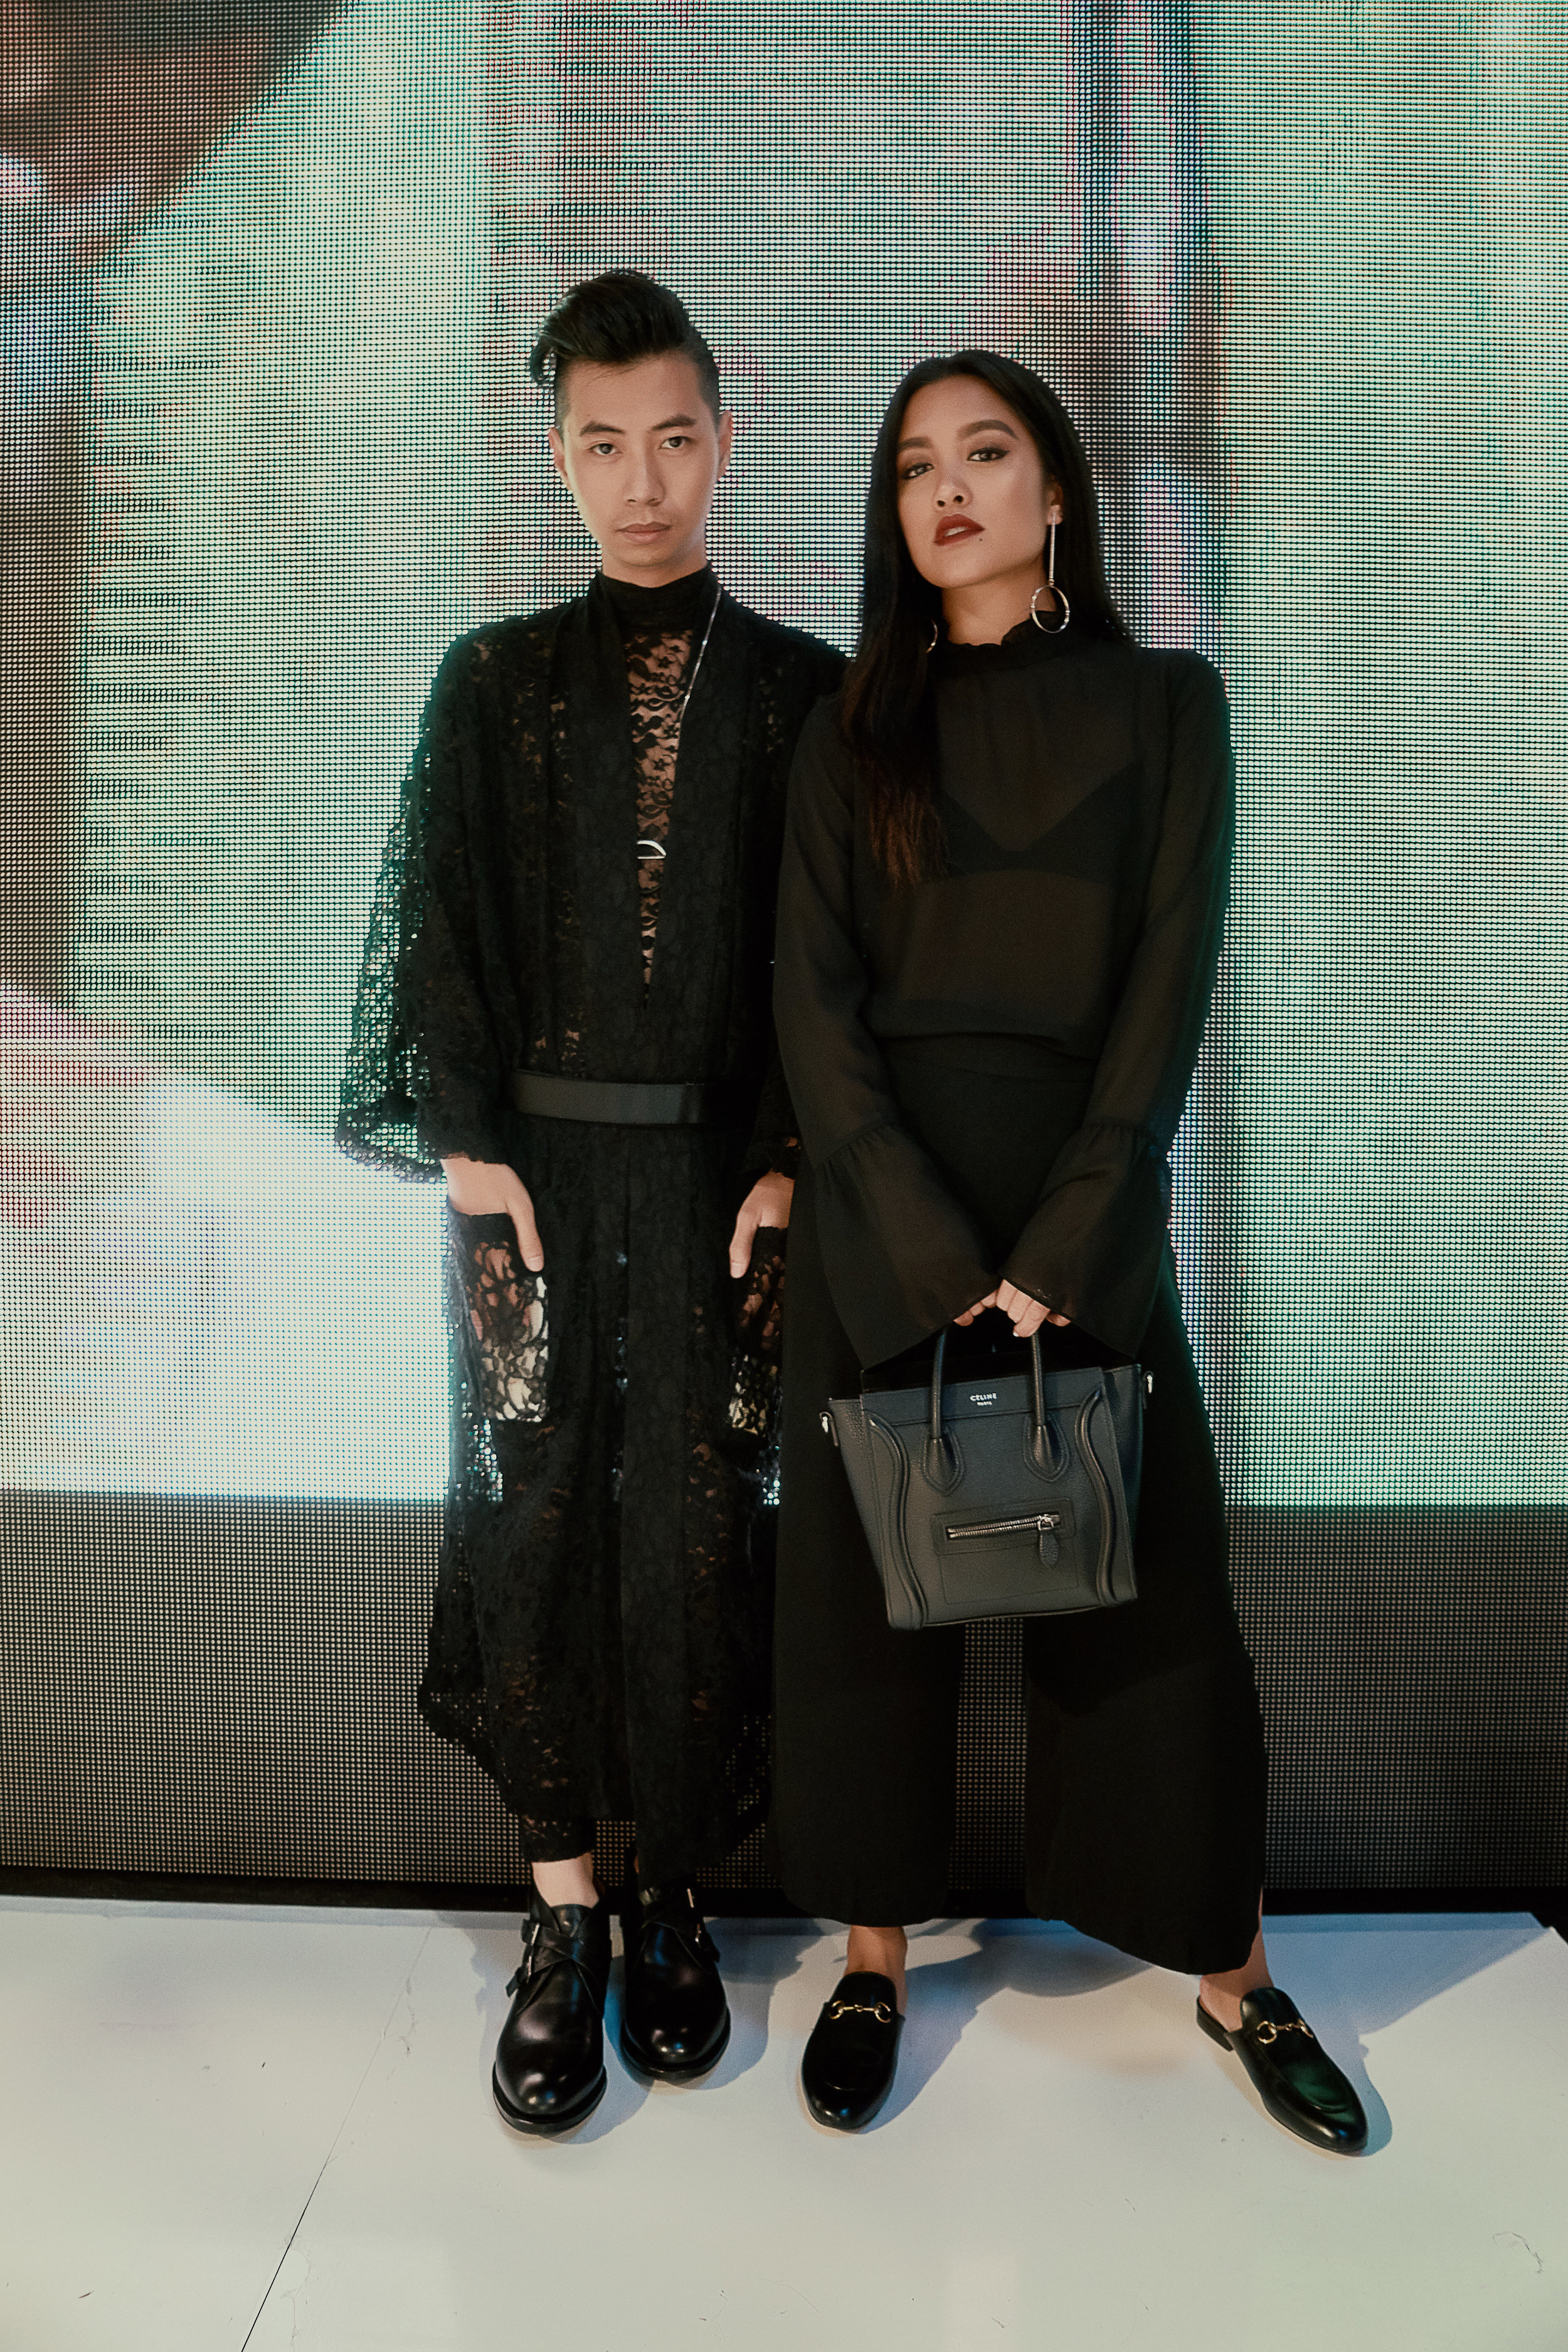 Striking a pose on the runway with My Belonging's Tommy Lei.